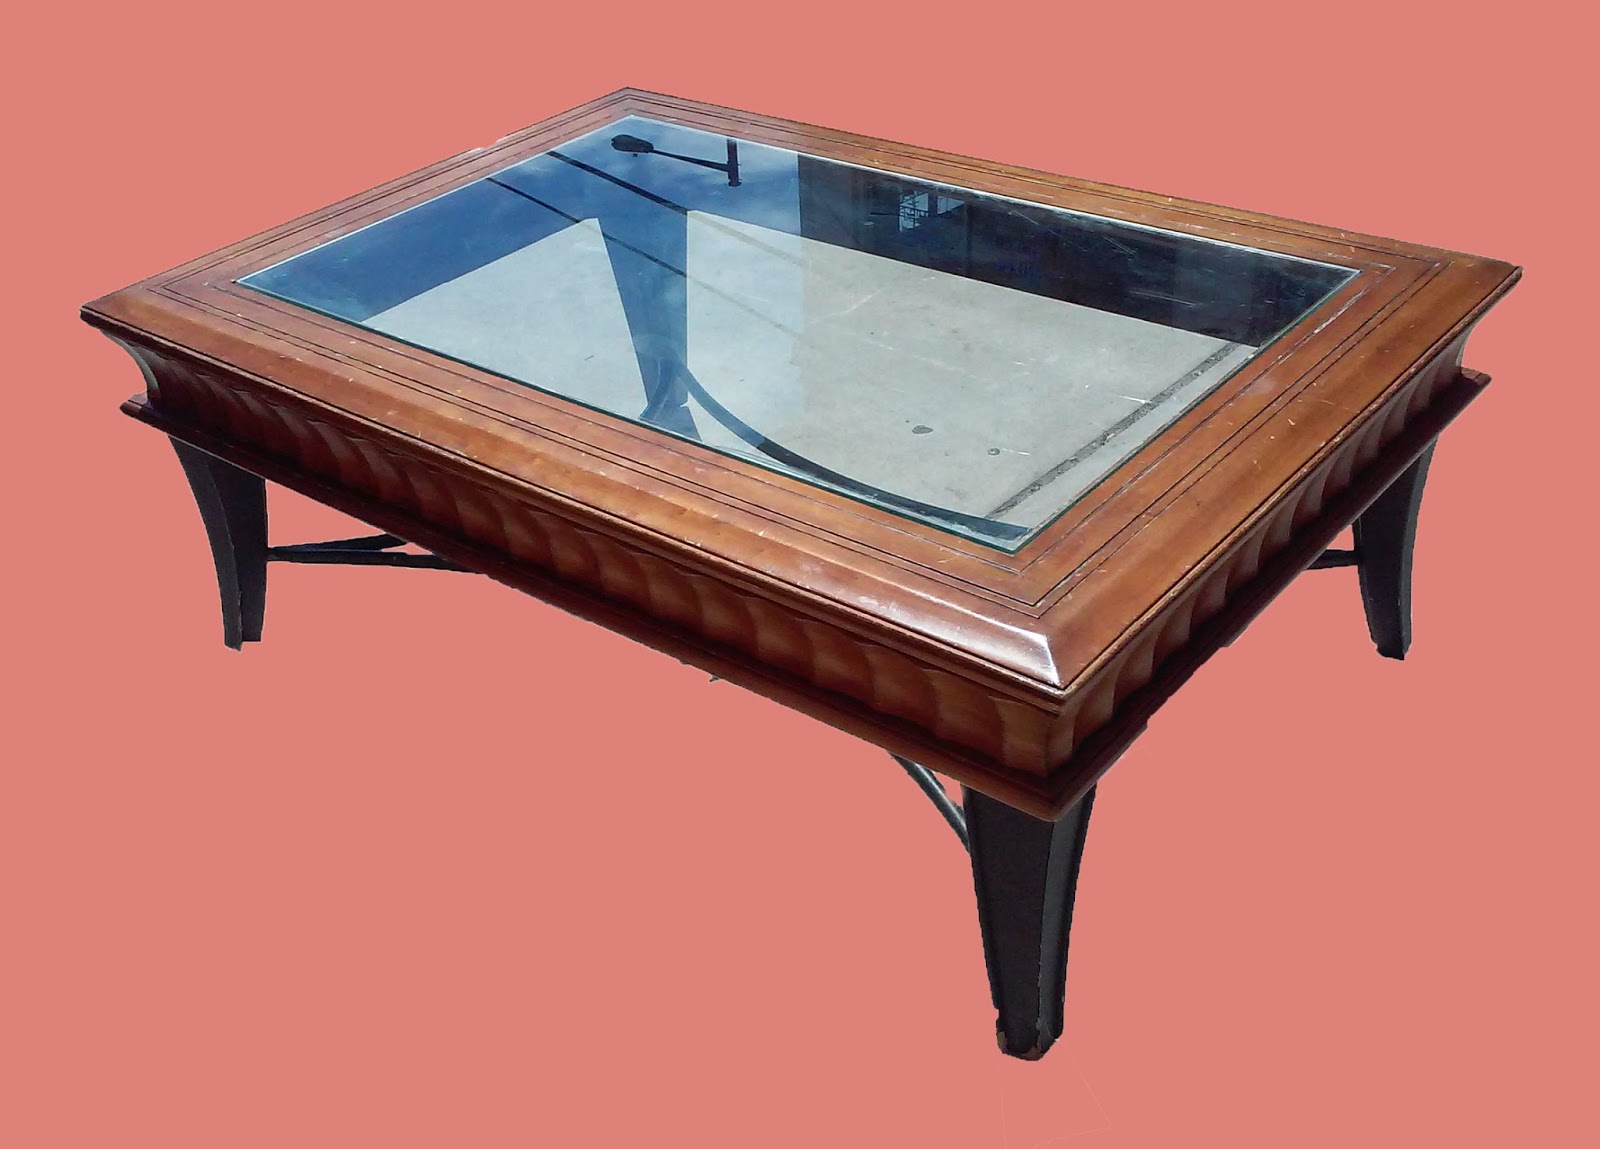 Uhuru furniture collectibles coffee table 85 75 sold for Cie no 85 table 4